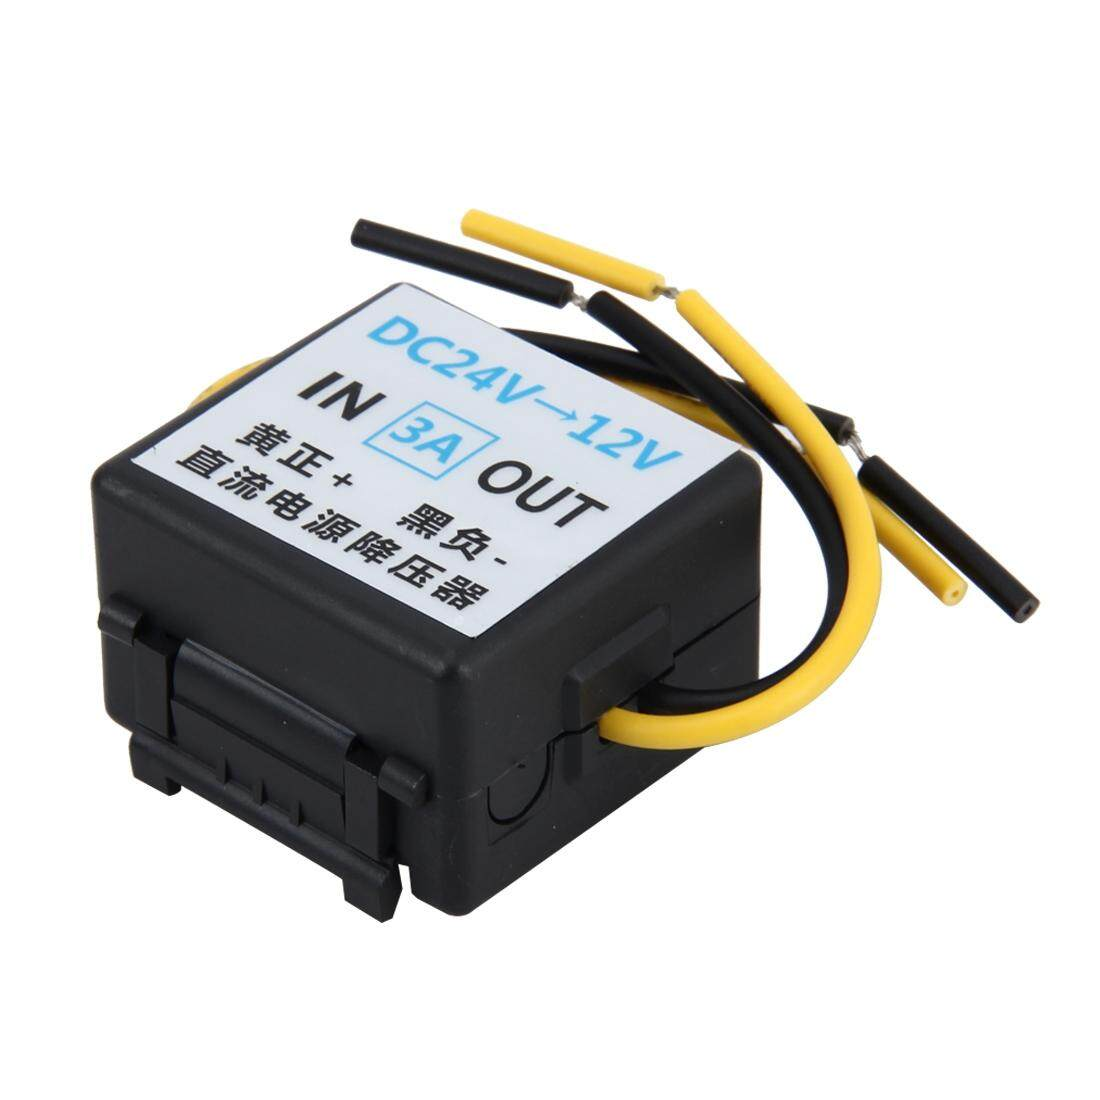 Power Steering System For Sale Automotive Online 2003 Honda Civic Electrical Dc 24v To 12v Car Step Down Transformer Rated Output Current 3a